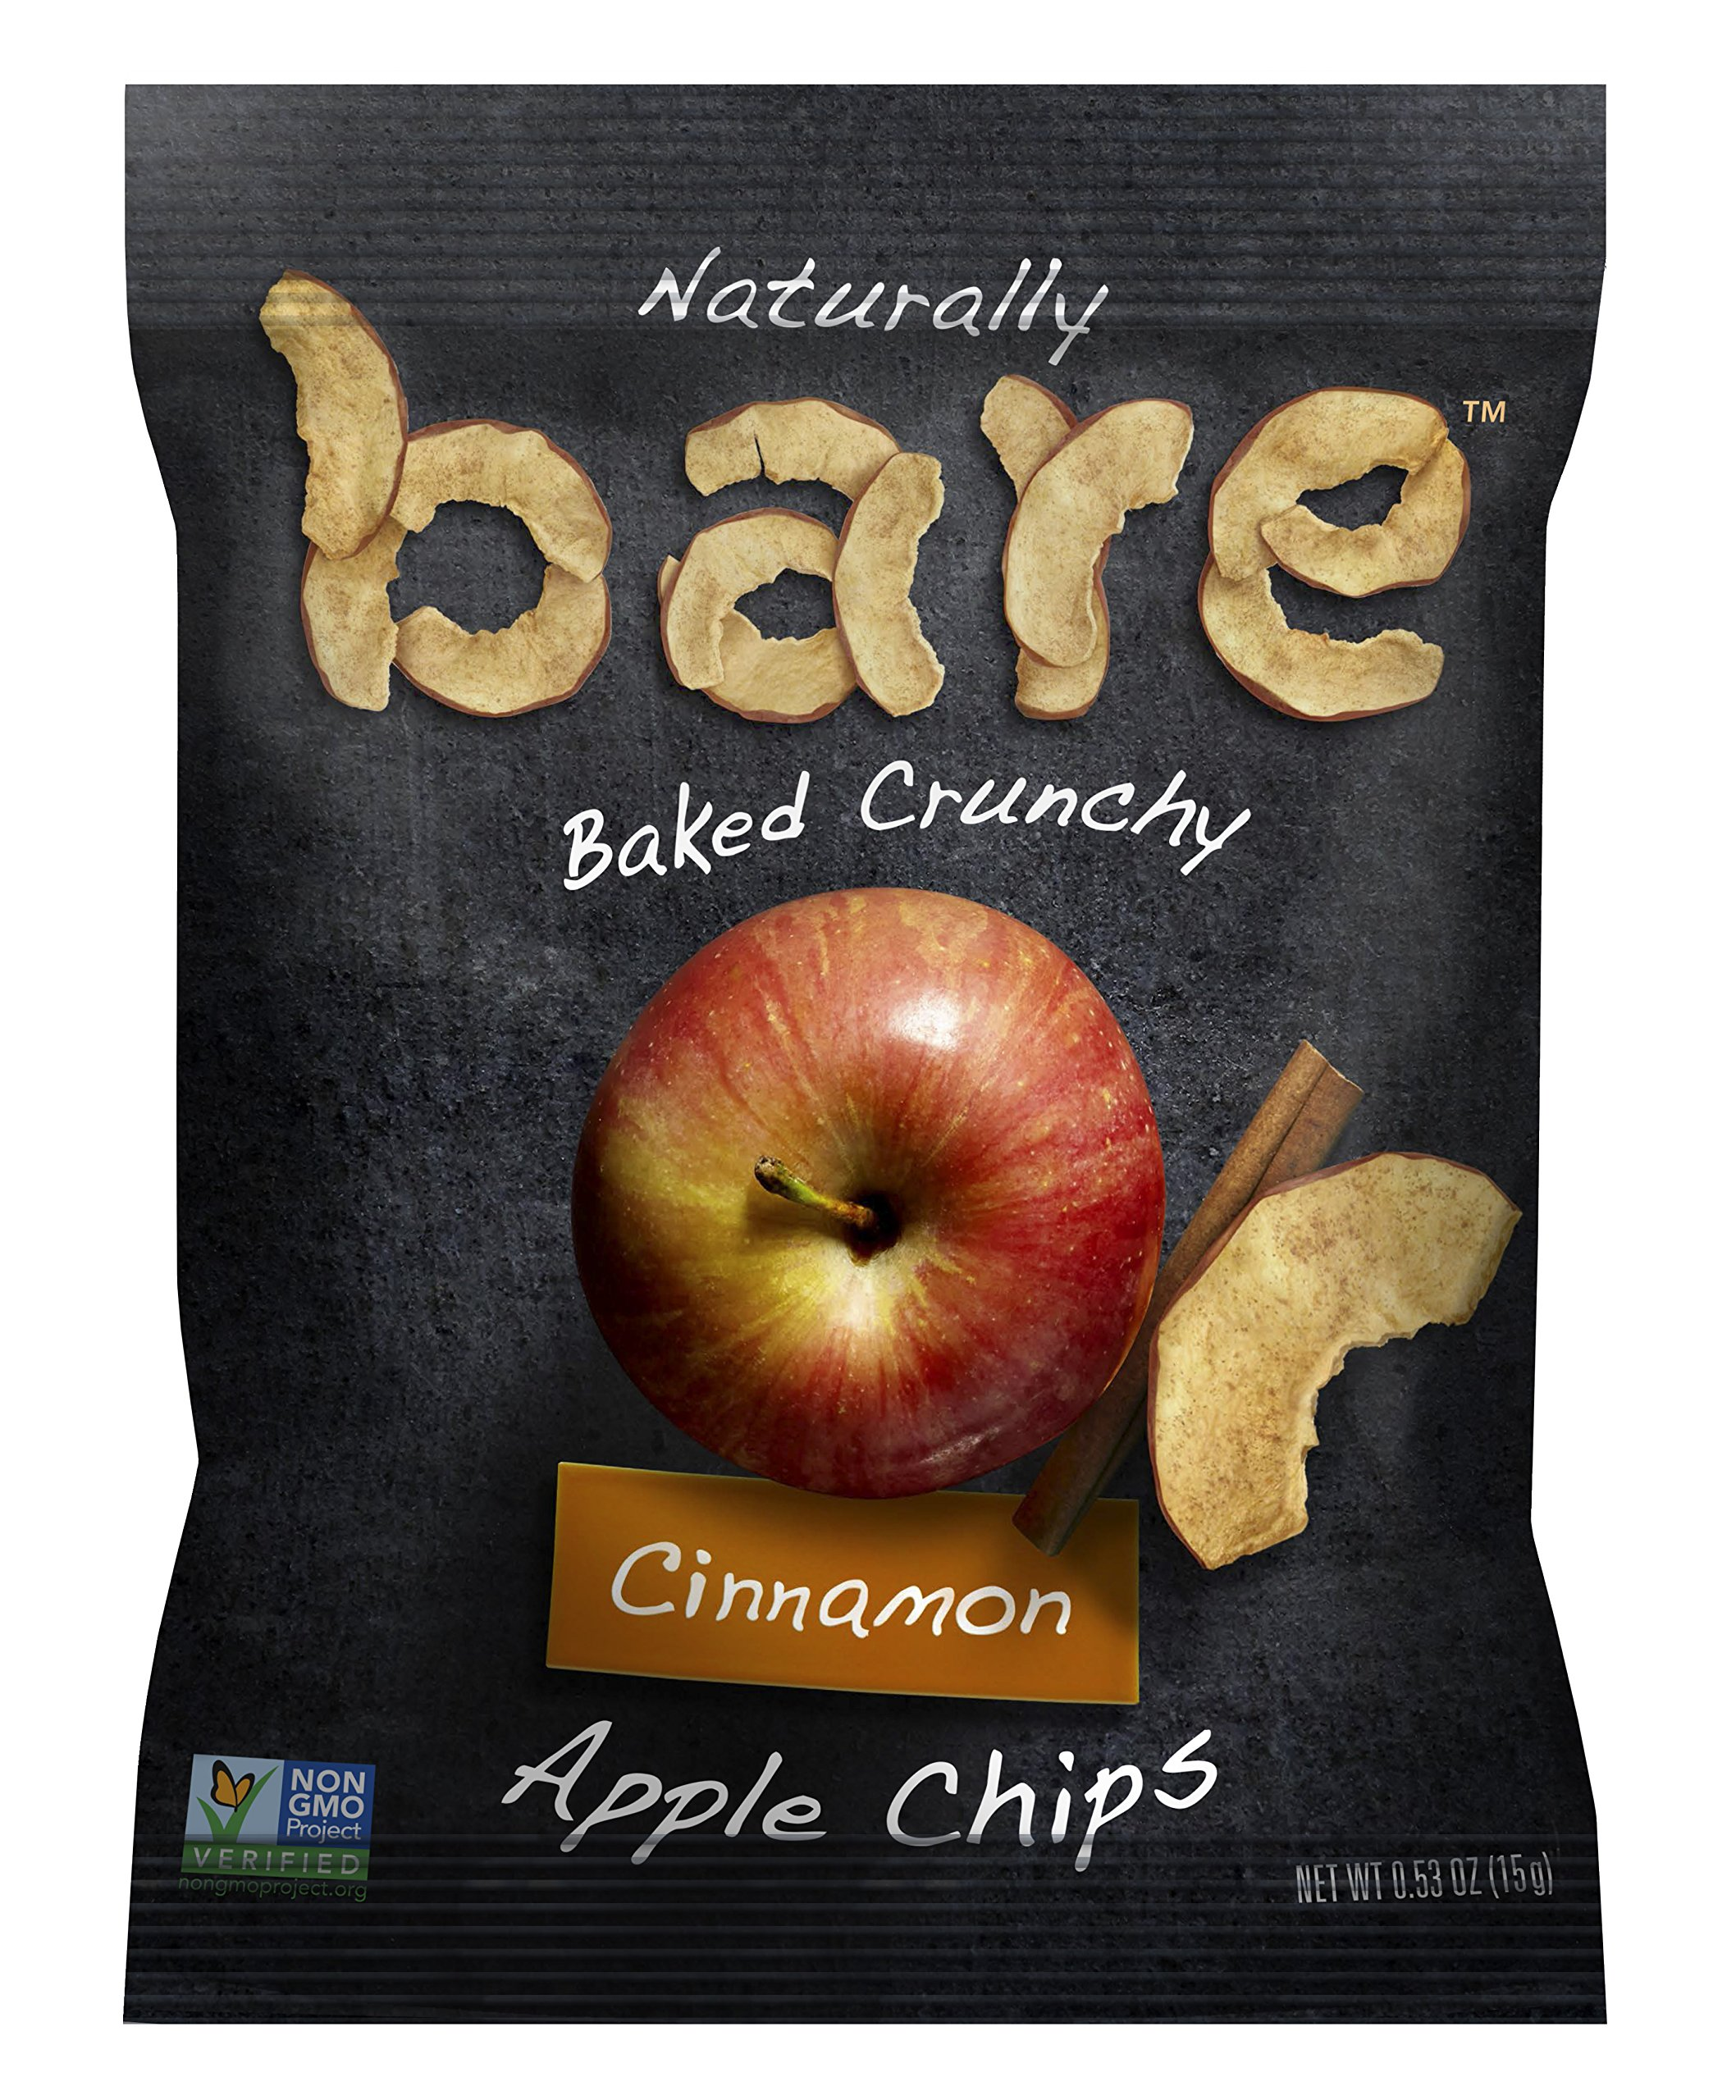 Bare Natural Apple Chips, Cinnamon, Gluten Free + Baked, Snack Size Bag - 0.53 Oz (Pack of 24) by Bare